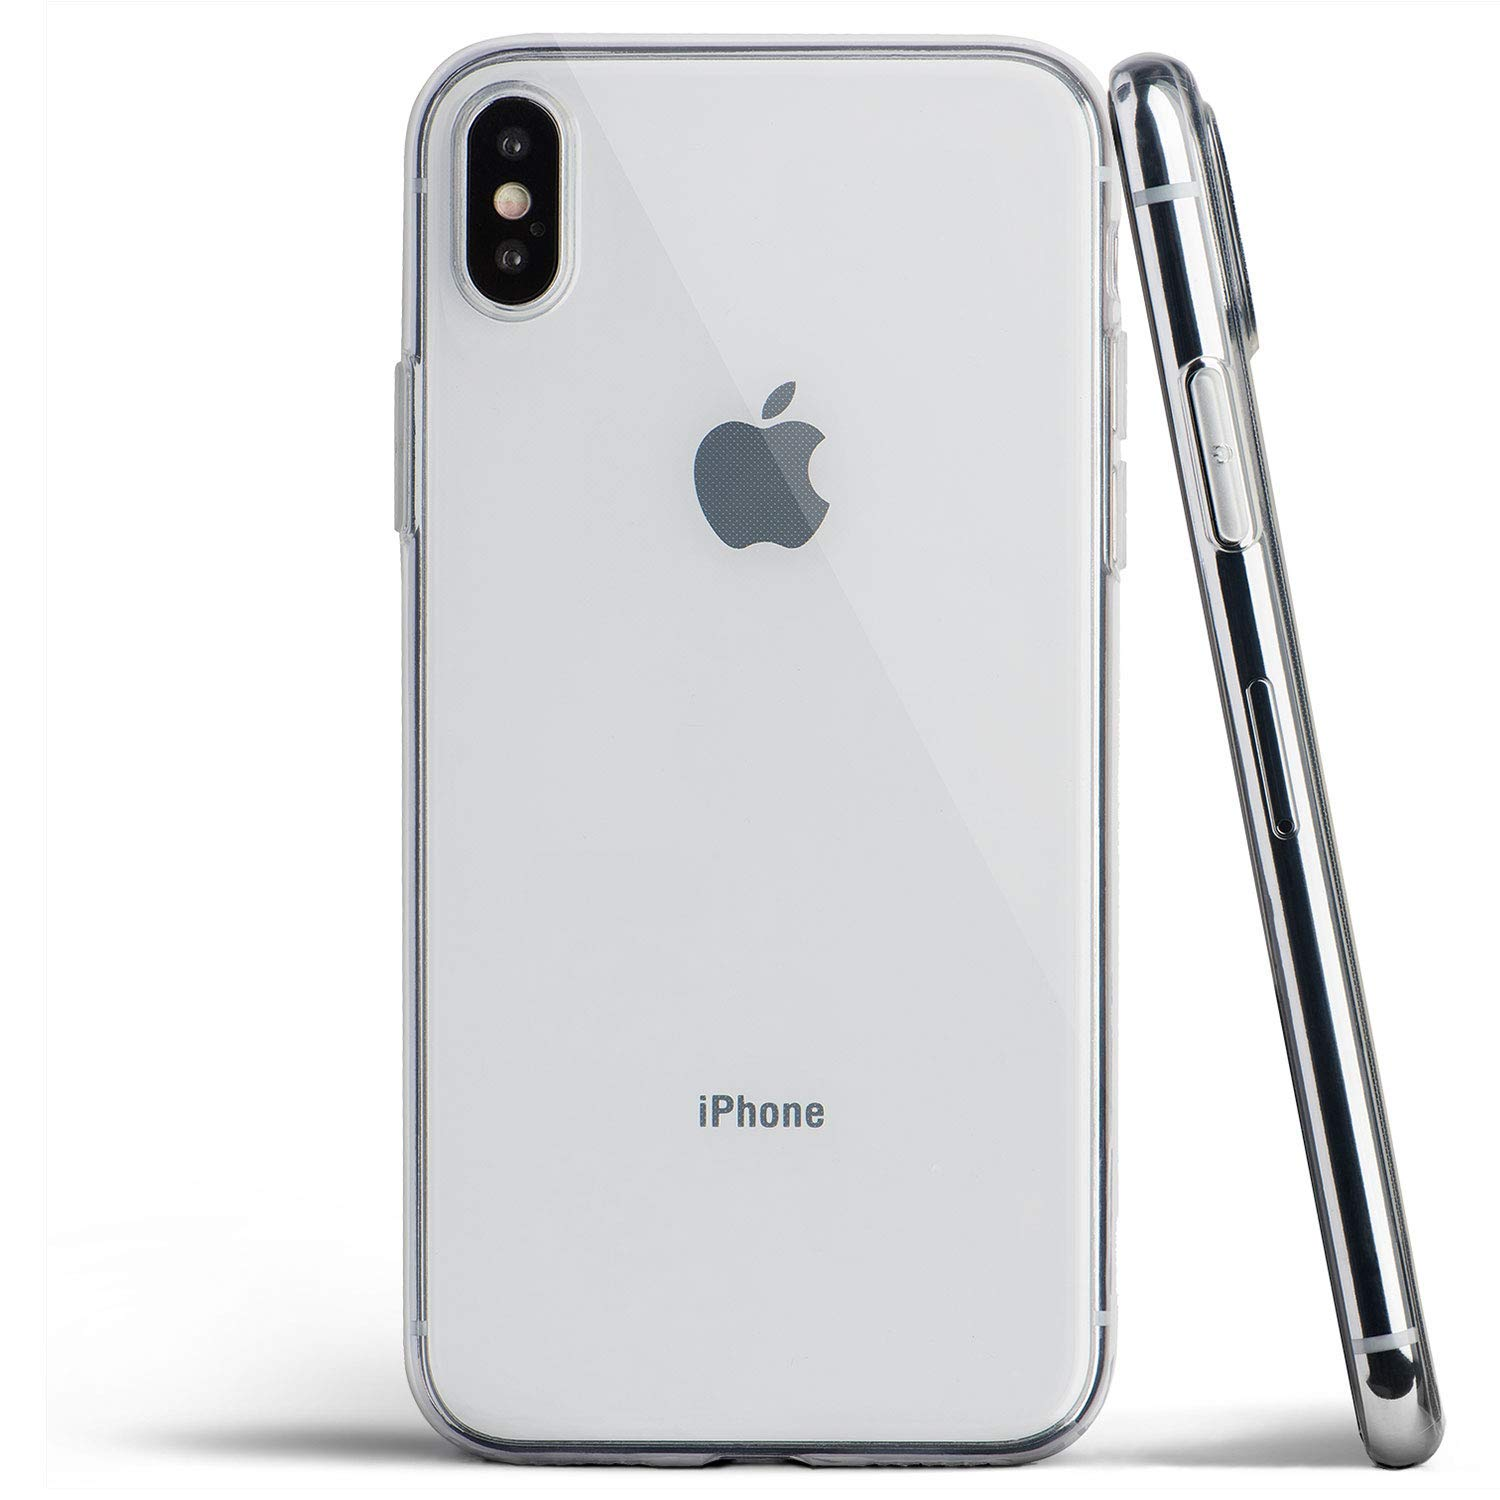 totallee thin clear iPhone case